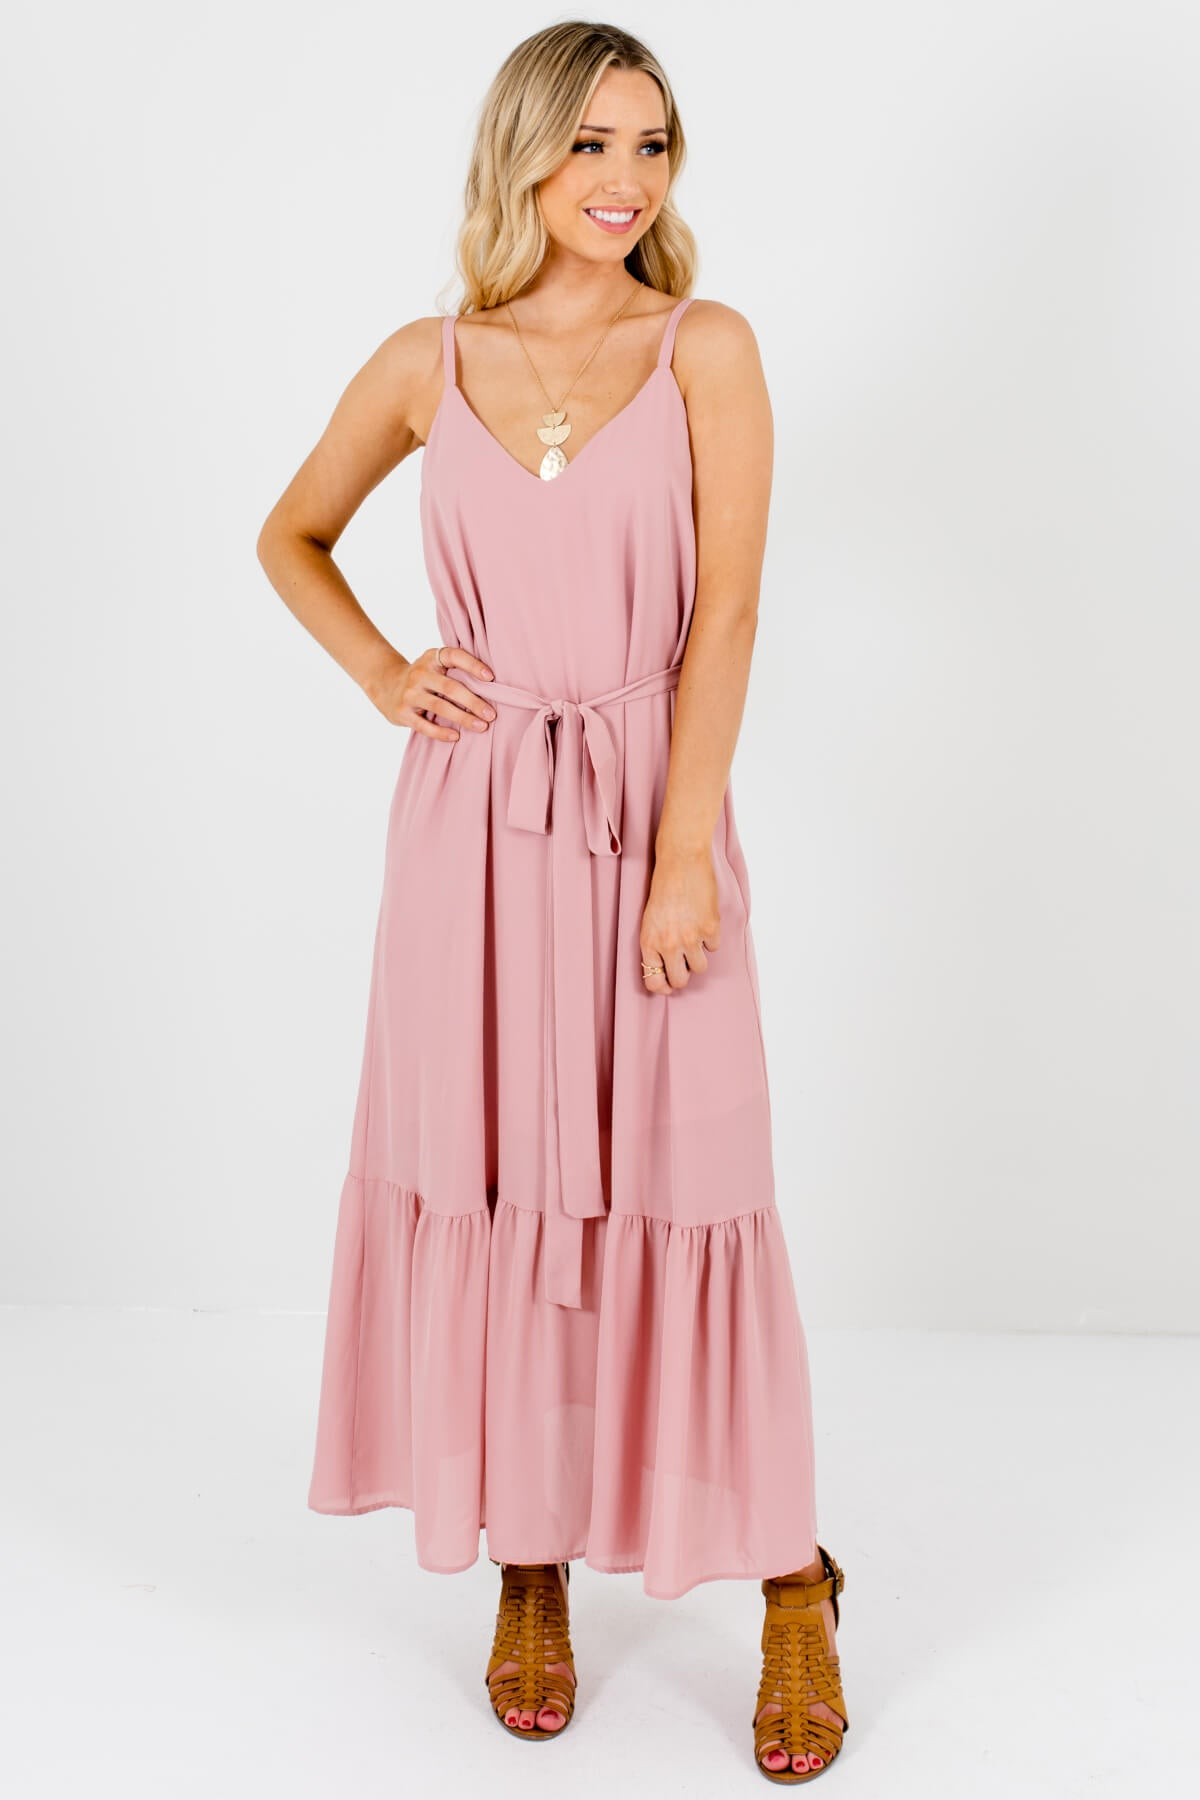 bc363afd758 Light Pink Ruffled Hem Boutique Maxi Dresses for Women